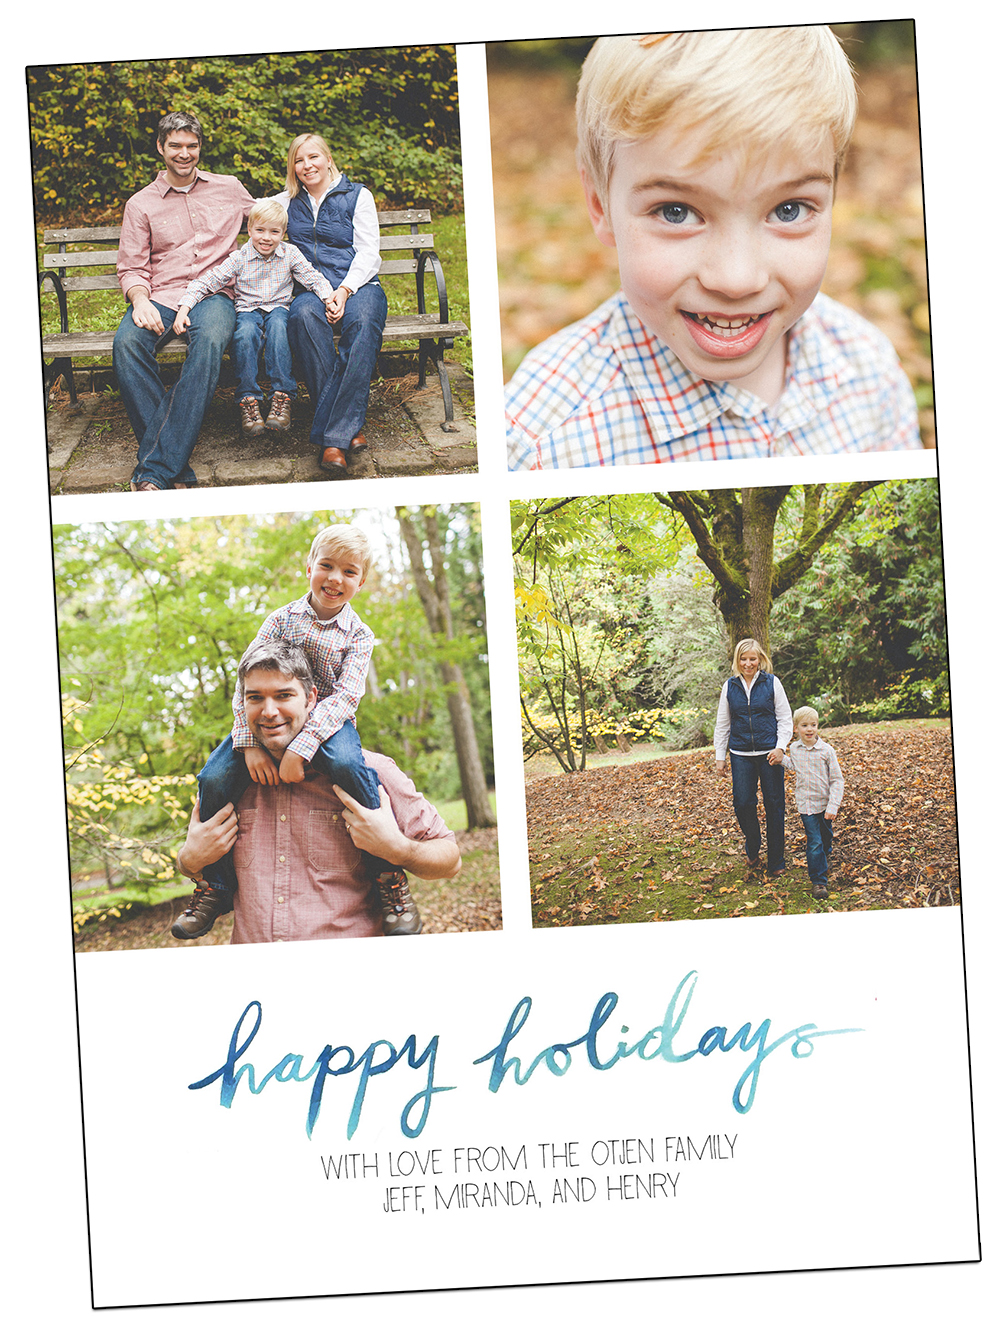 Holiday Card 2015 - Otjen Family 2 copy.jpg